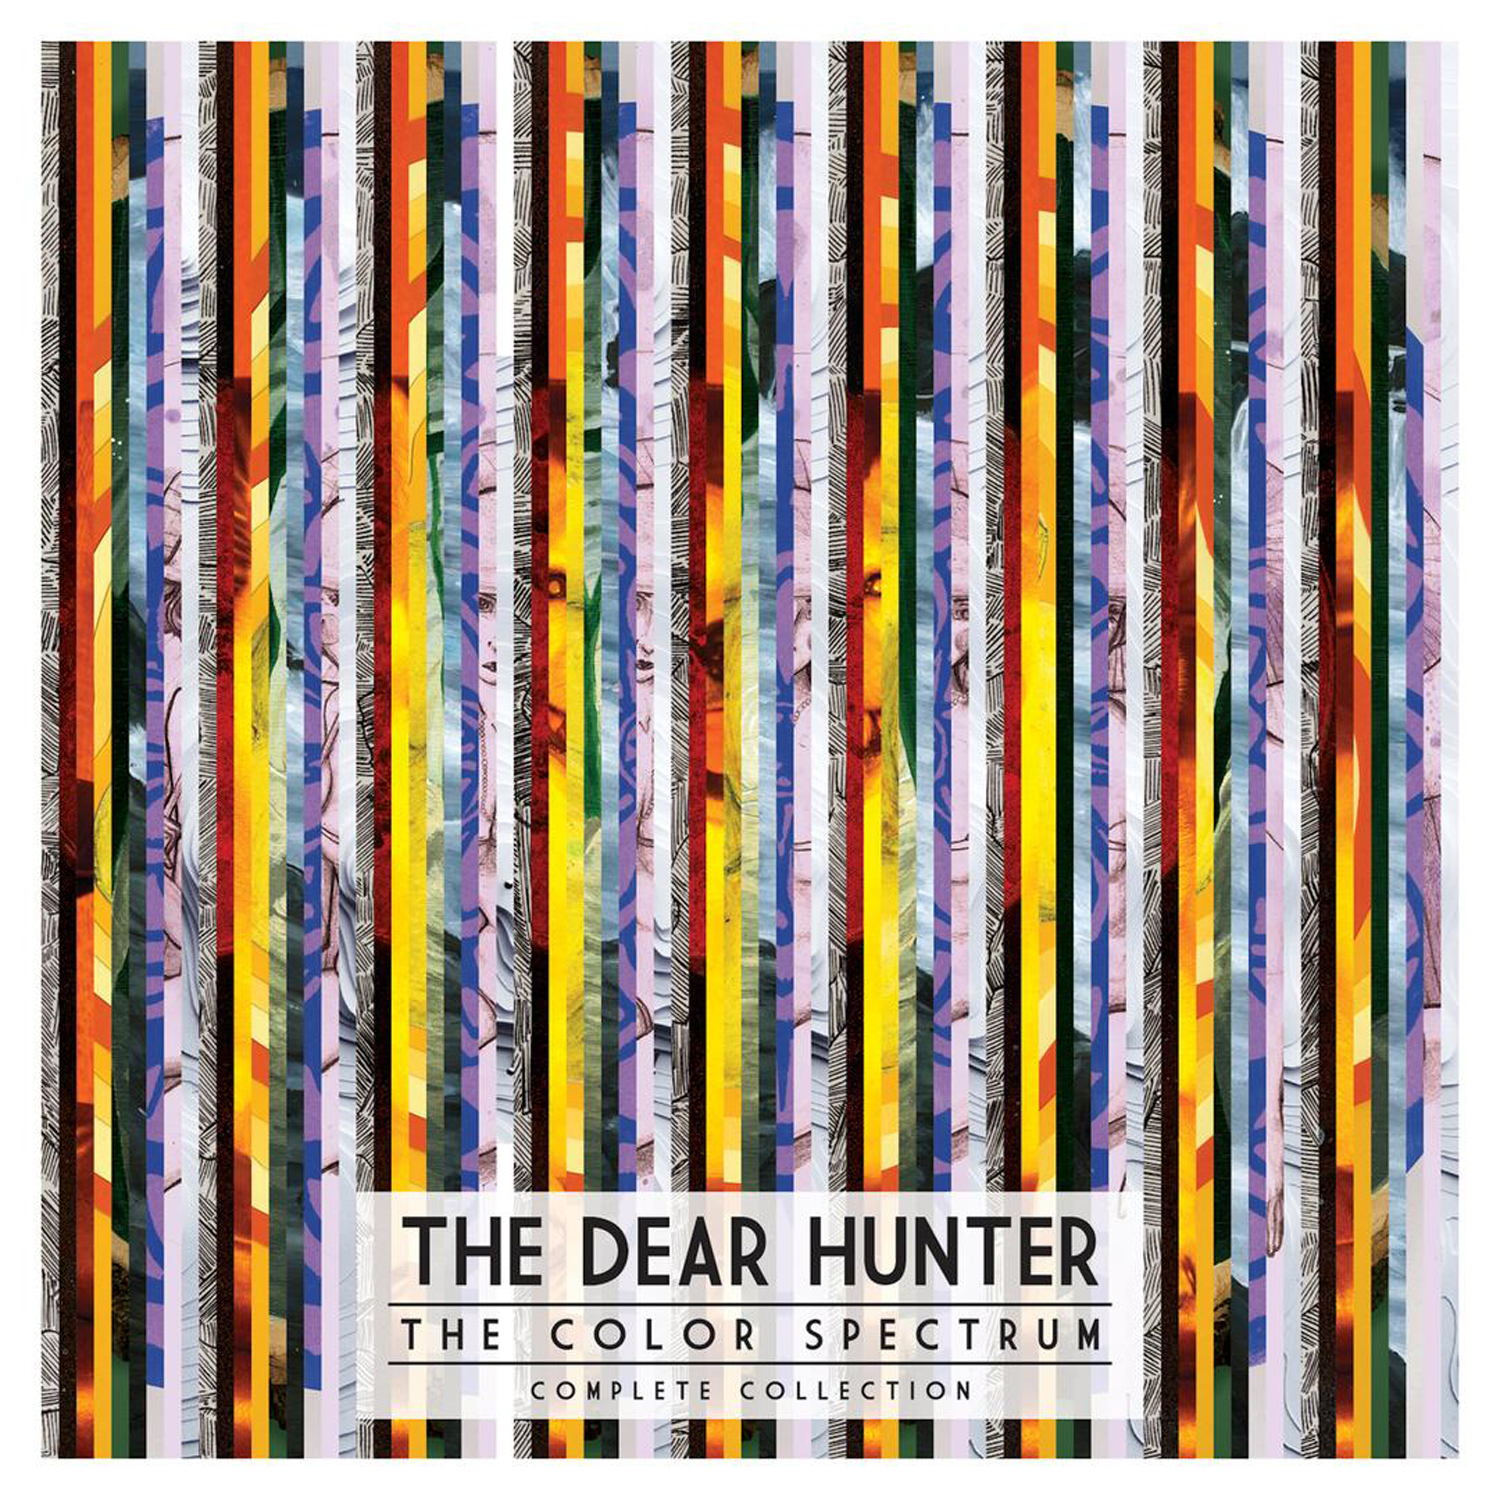 The Color Spectrum is the fourth studio album by The Dear Hunter.